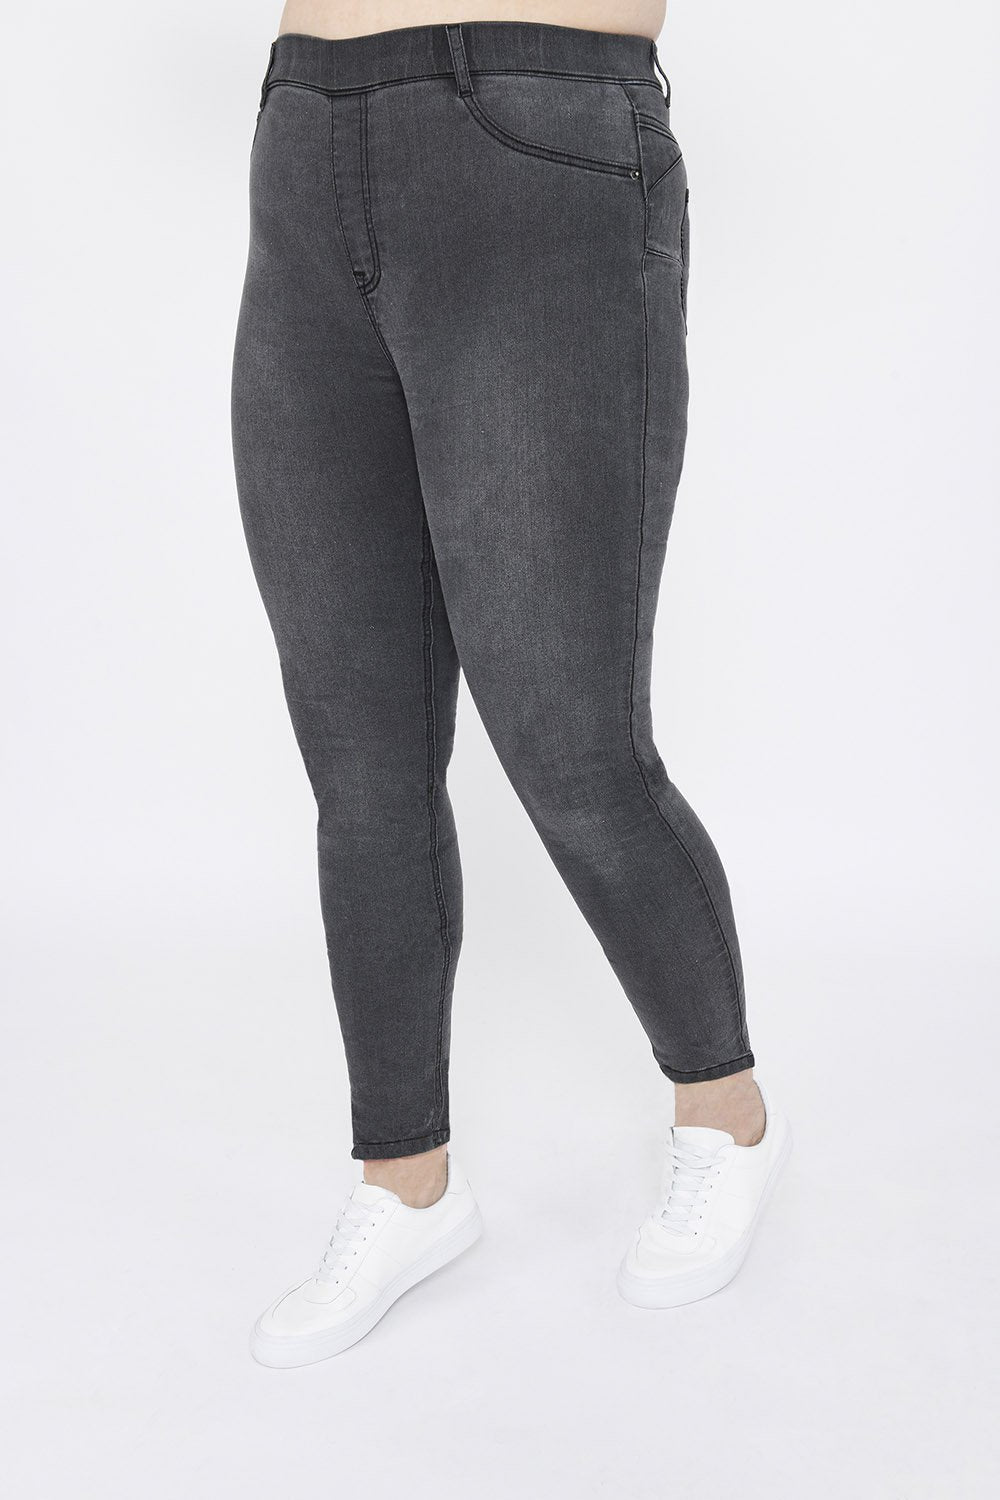 Plus Size Grey Ankle Grazer Jeggings